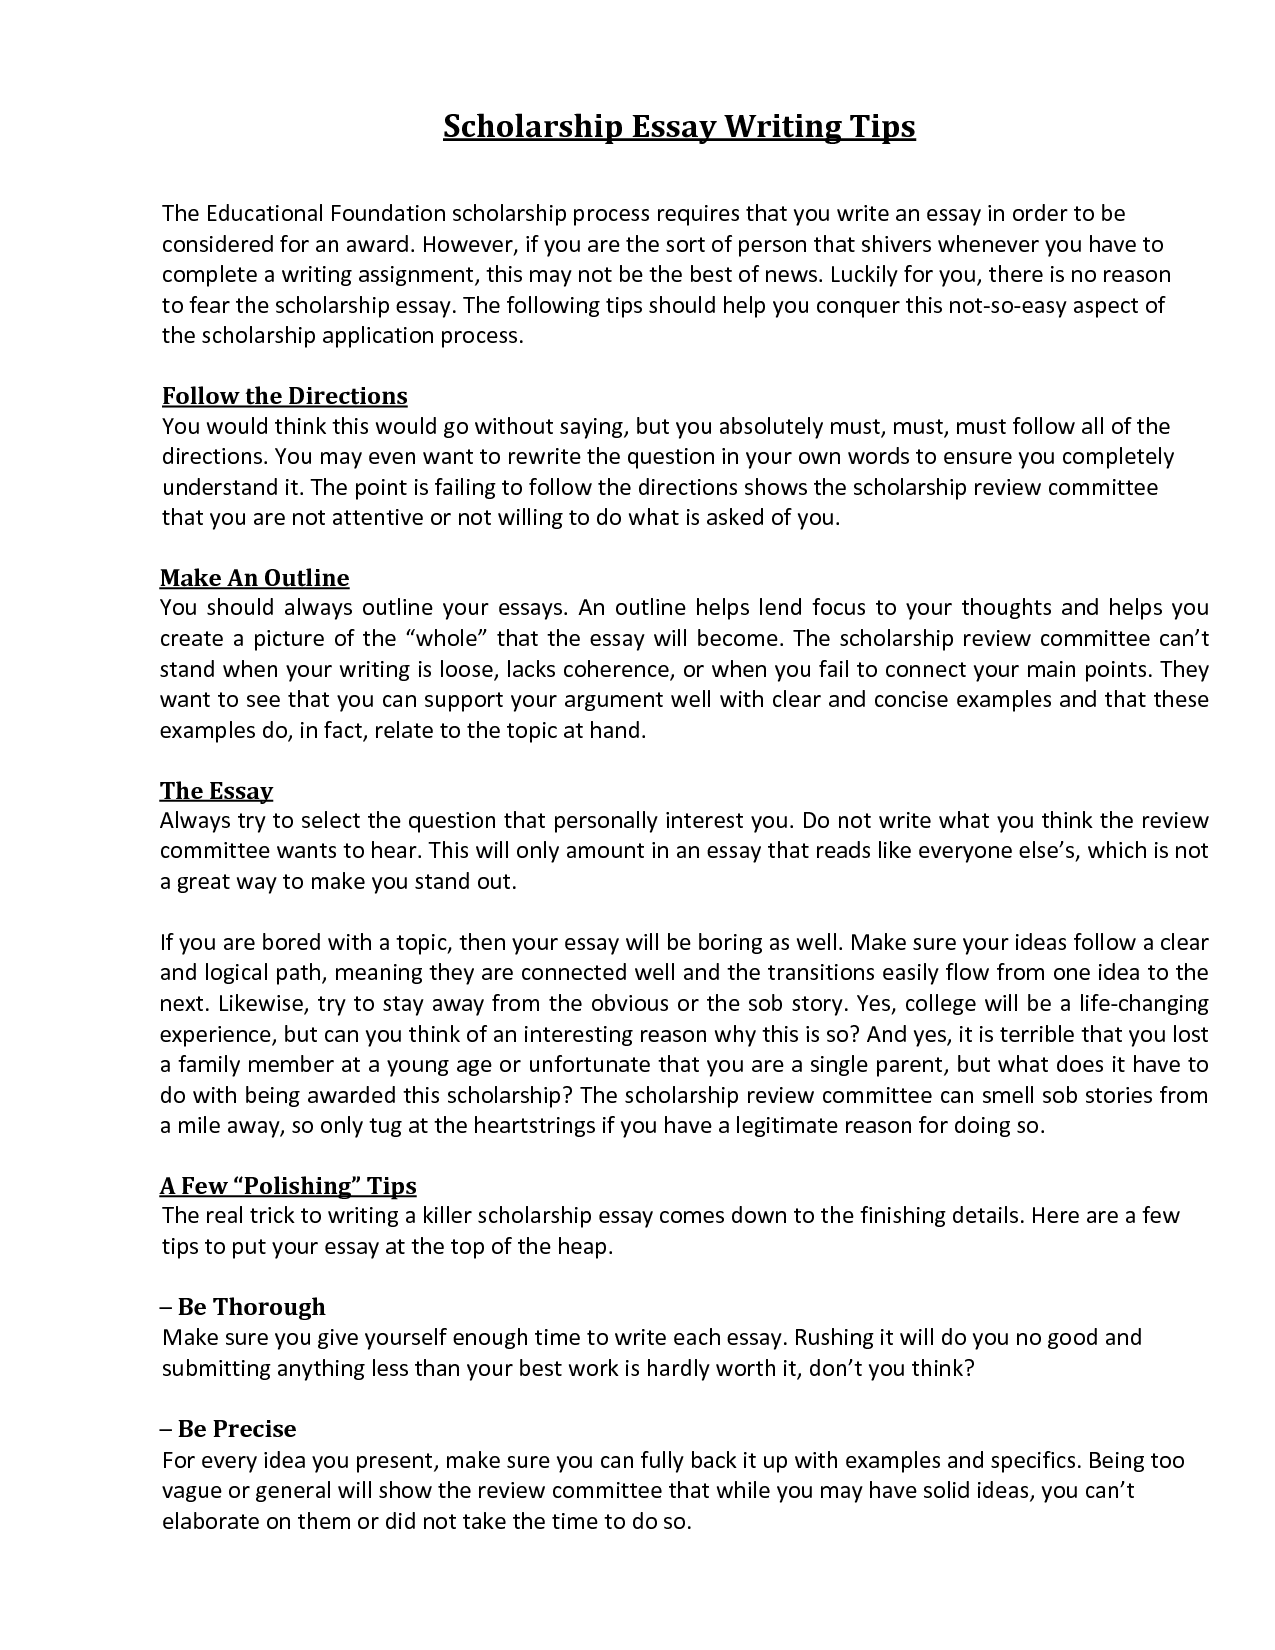 017 Write Essay Awful A About Your Best Friend Descriptive On Freedom Fighter Full